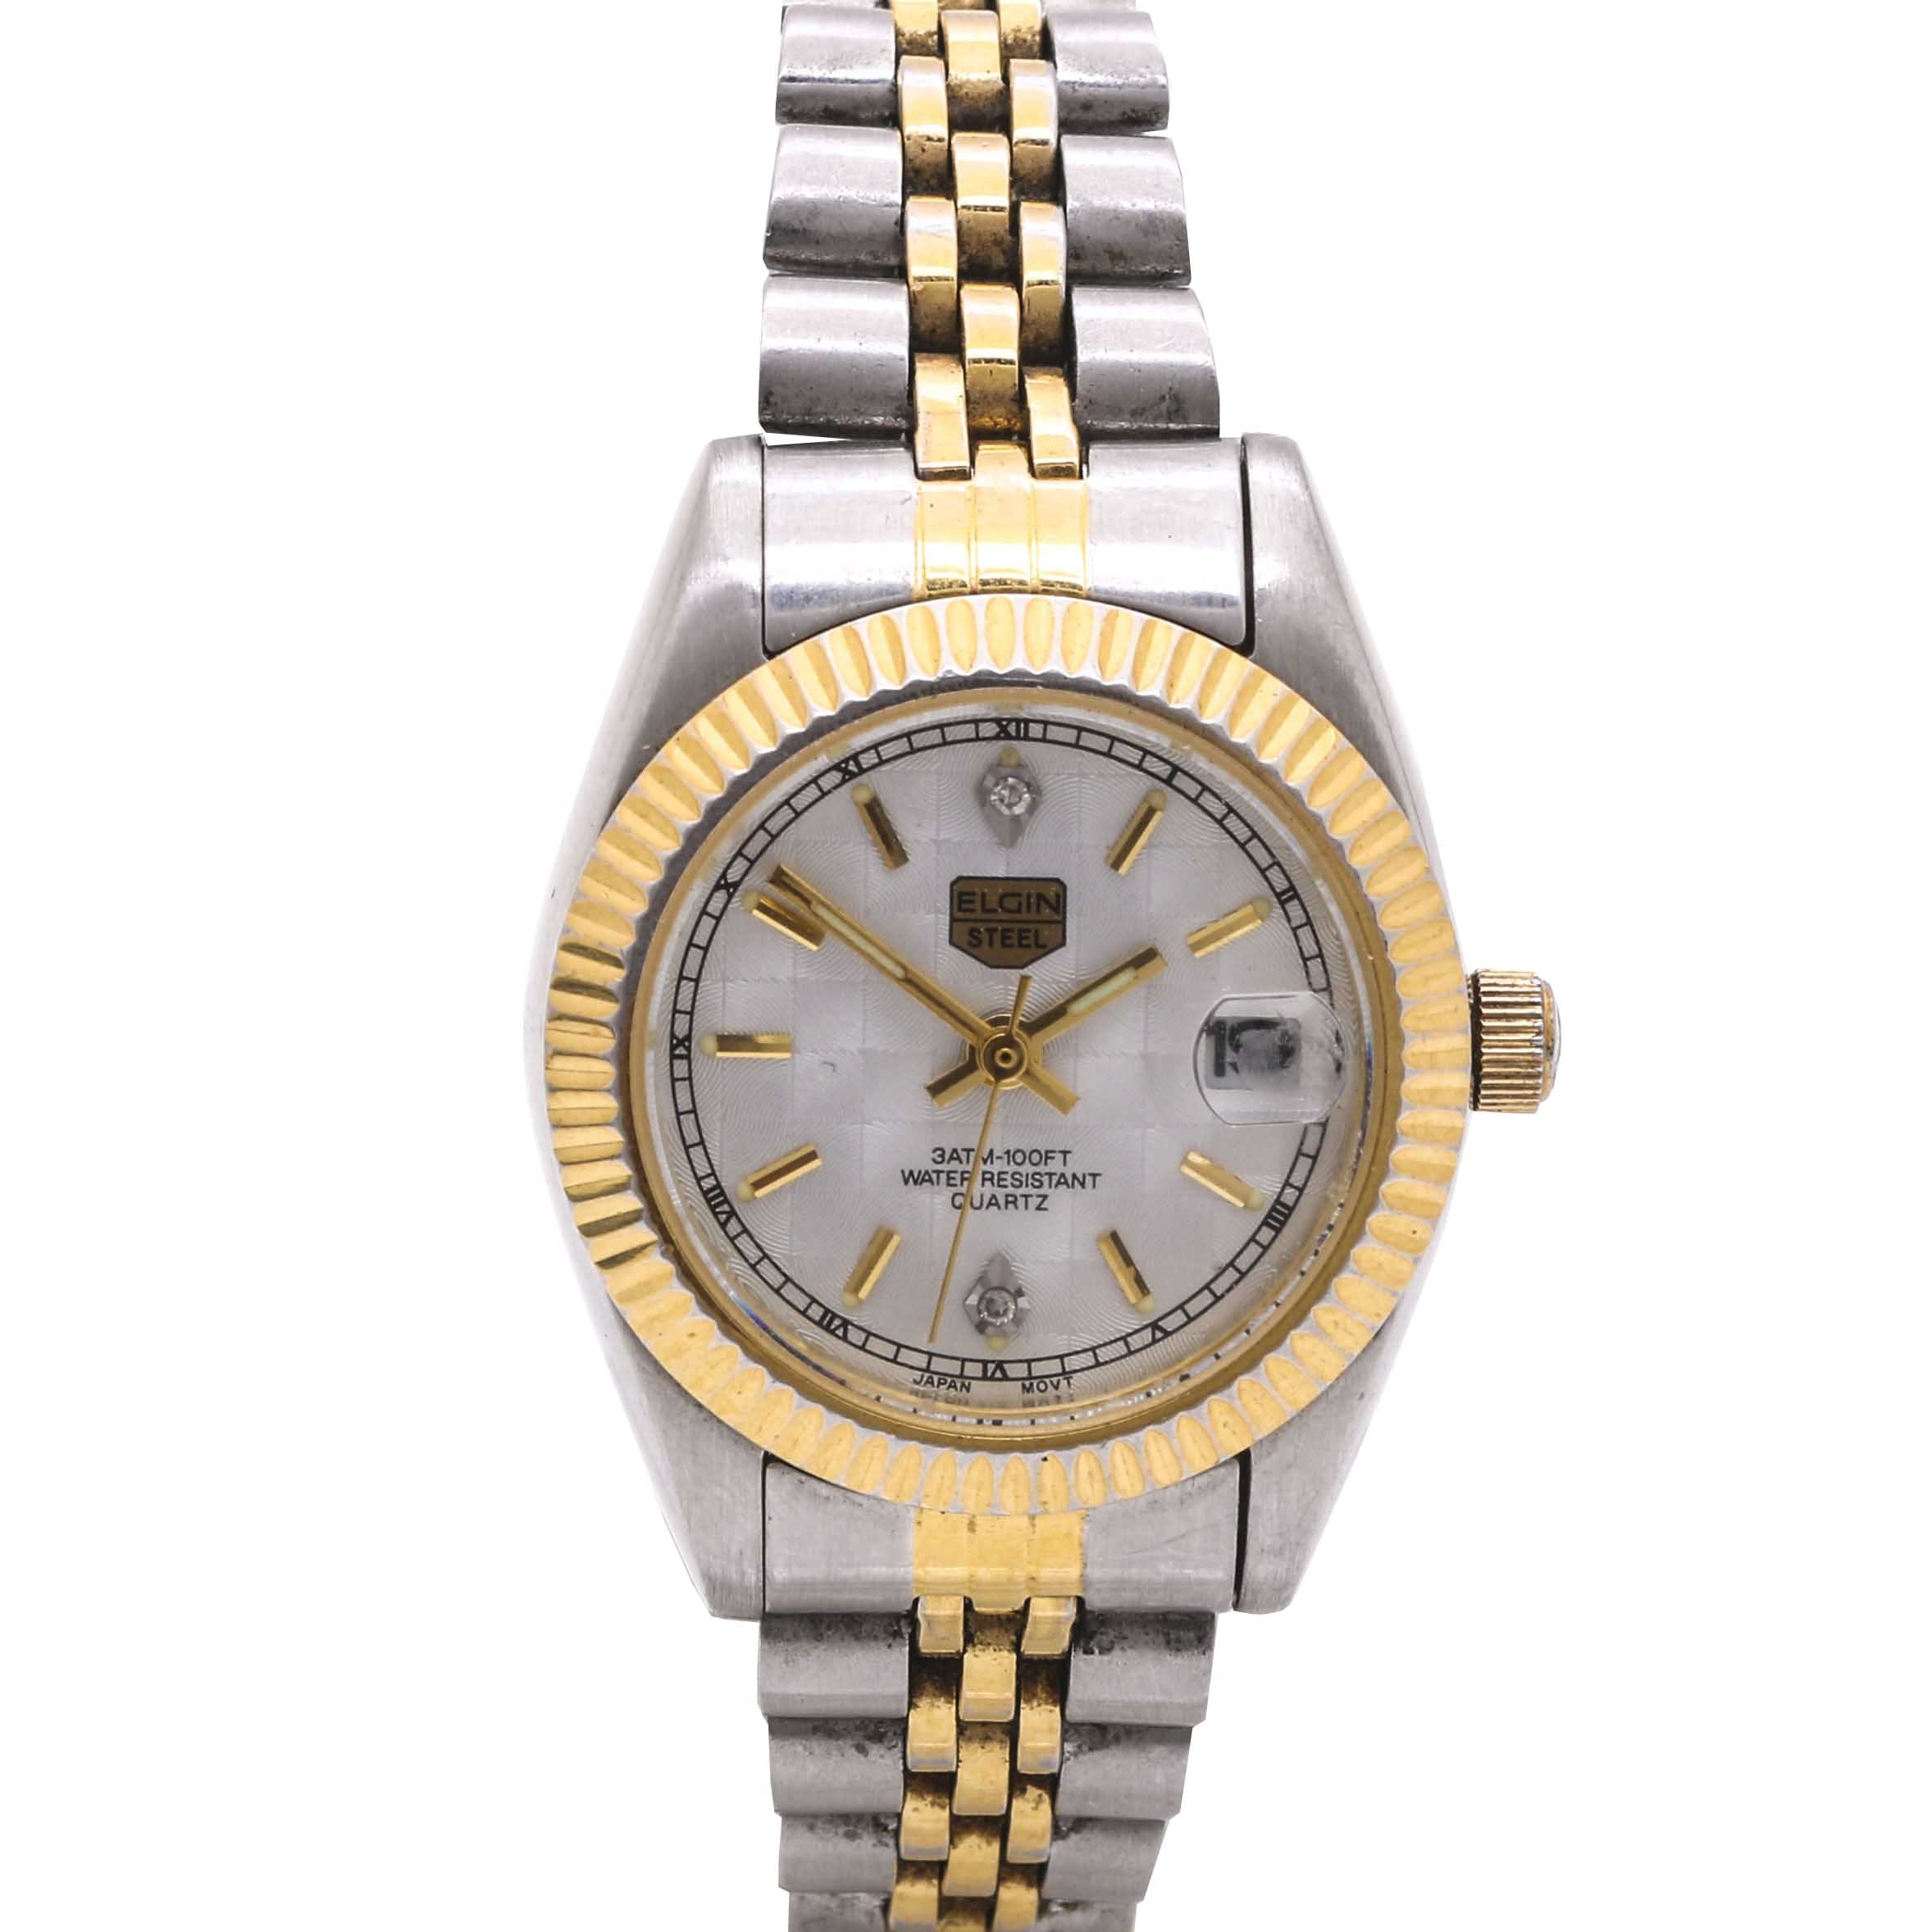 Elgin Two Tone Stainless Steel and Diamond Wristwatch